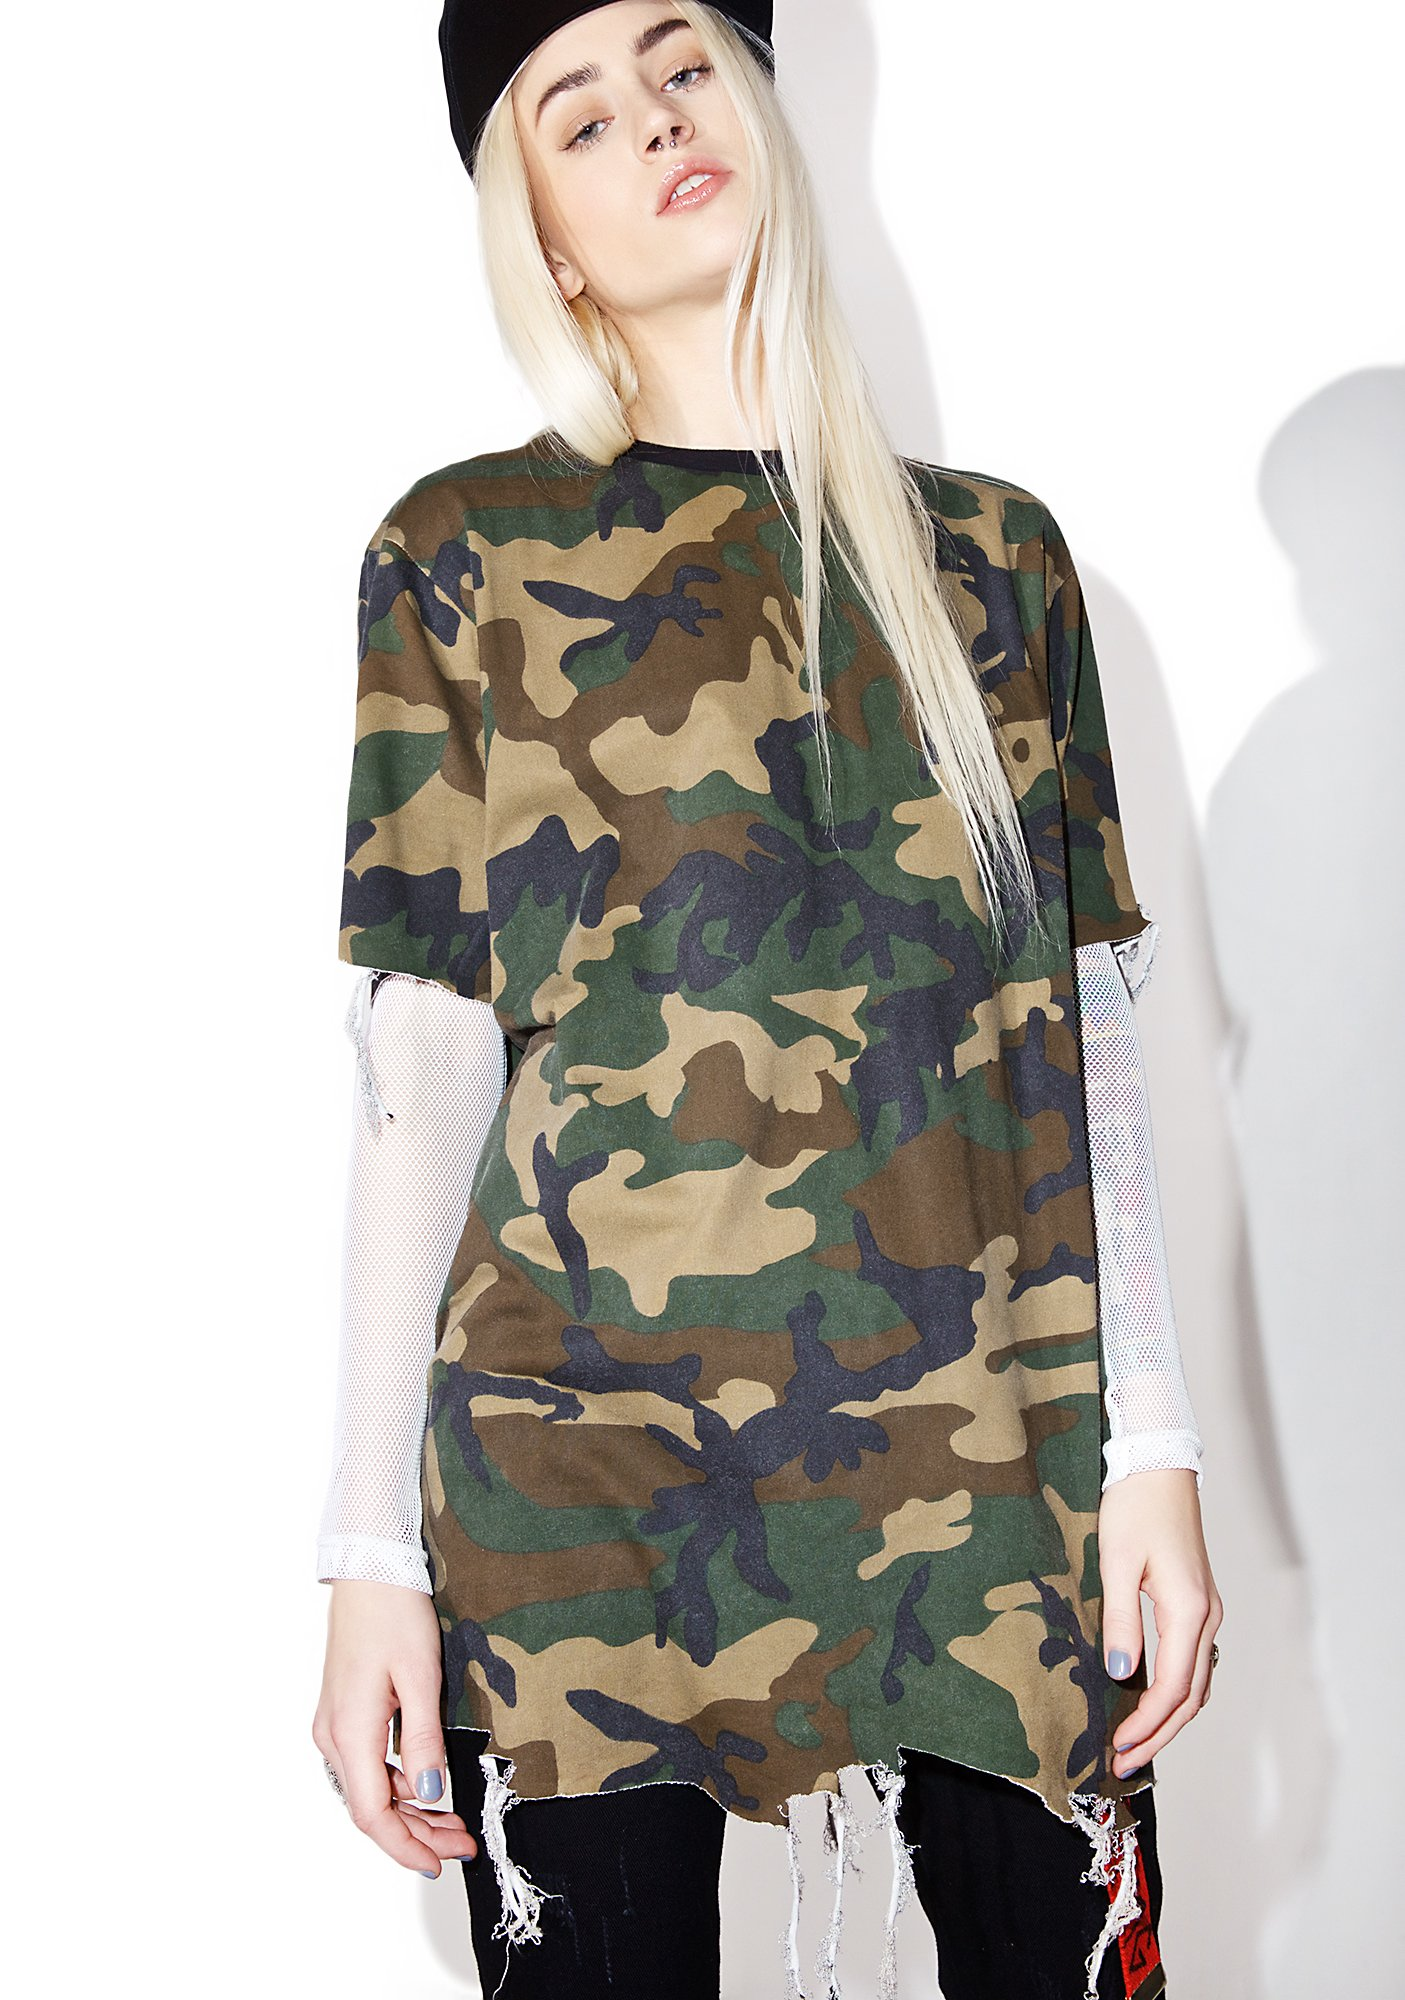 Black Scale Destroyed T-Shirt